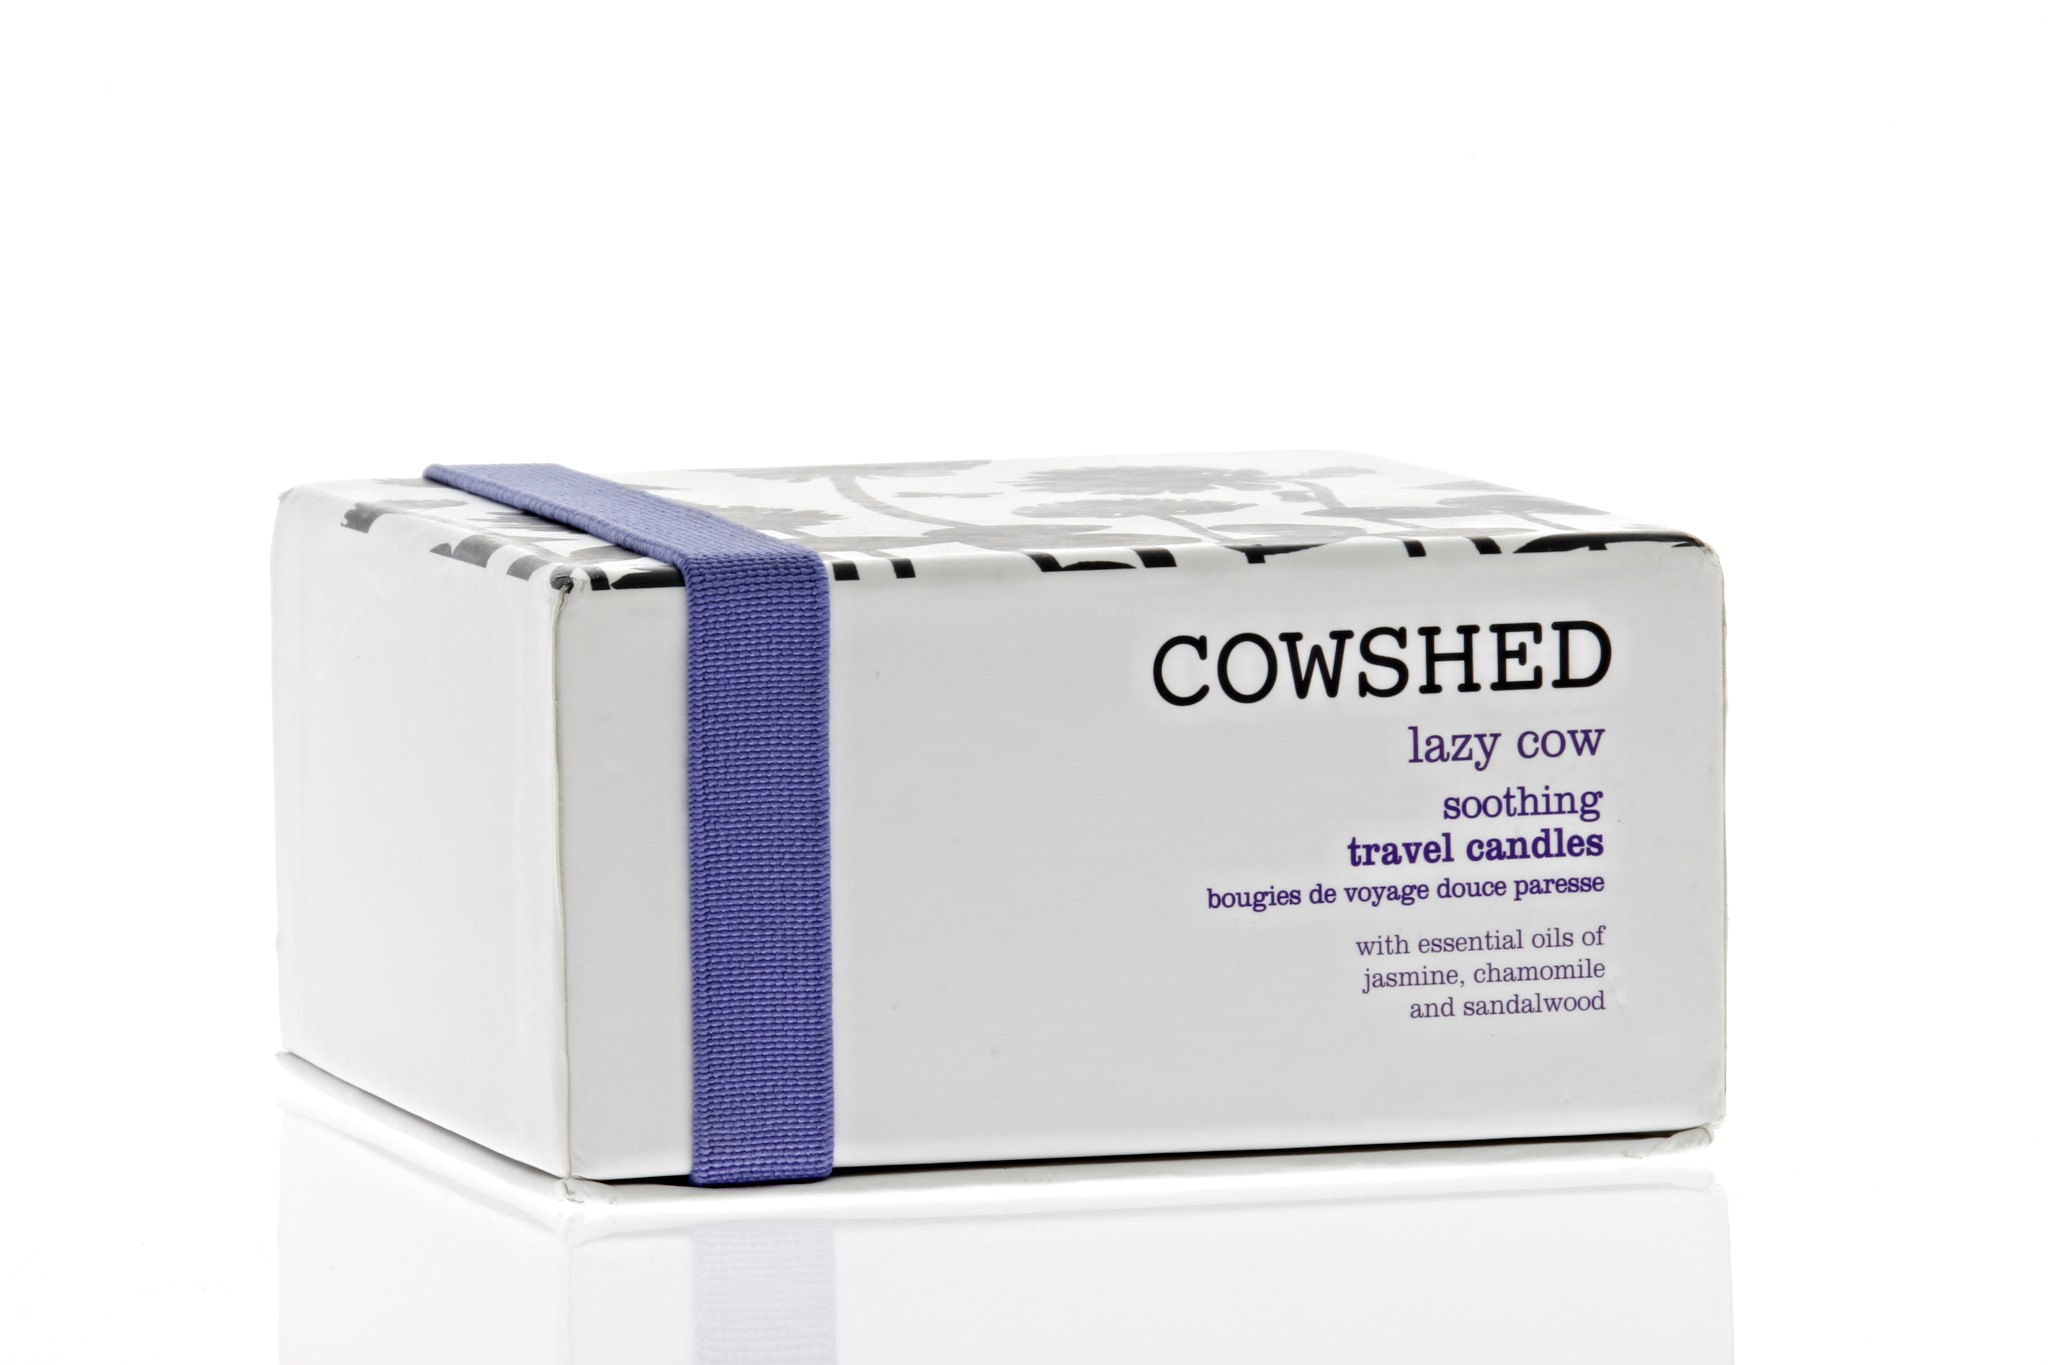 Cowshed Lazy Cow Soothing Travel Candles 4 X 134 Oz Home Scent C Natural Soy Wax Scented Moody Pack Are Made From 100 Is A Completely Renewable Source Making It Environmentally Friendly And Sustainable